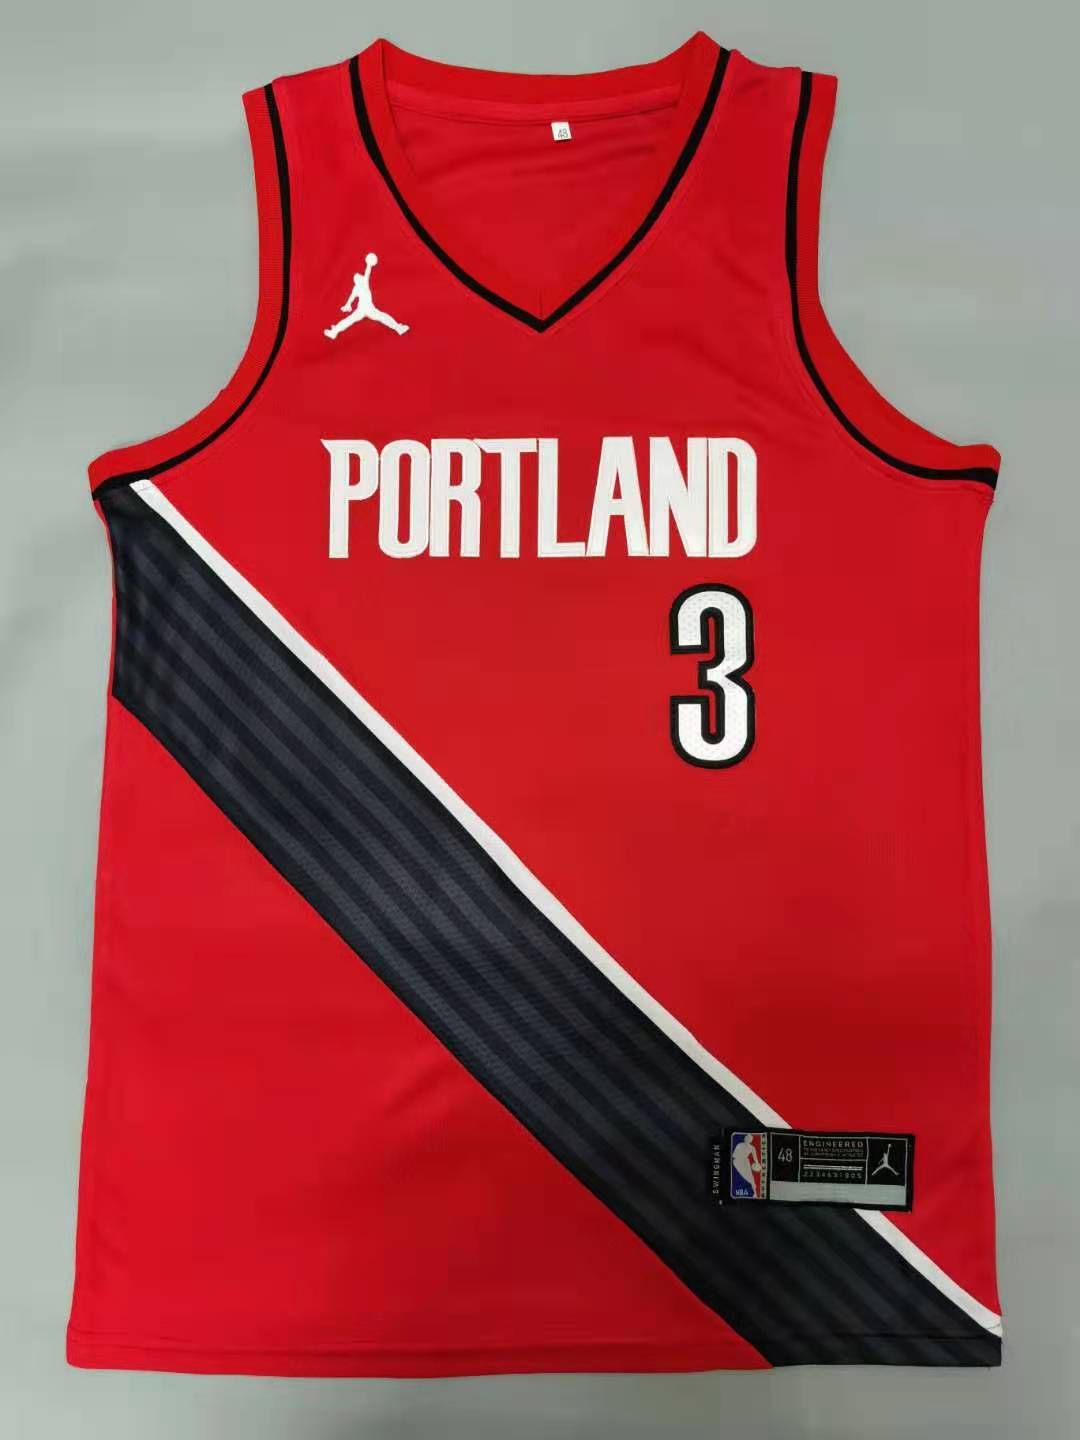 Cheap Men Portland Trail Blazers 3 Mccollum Red 2021 Game NBA Jerseys